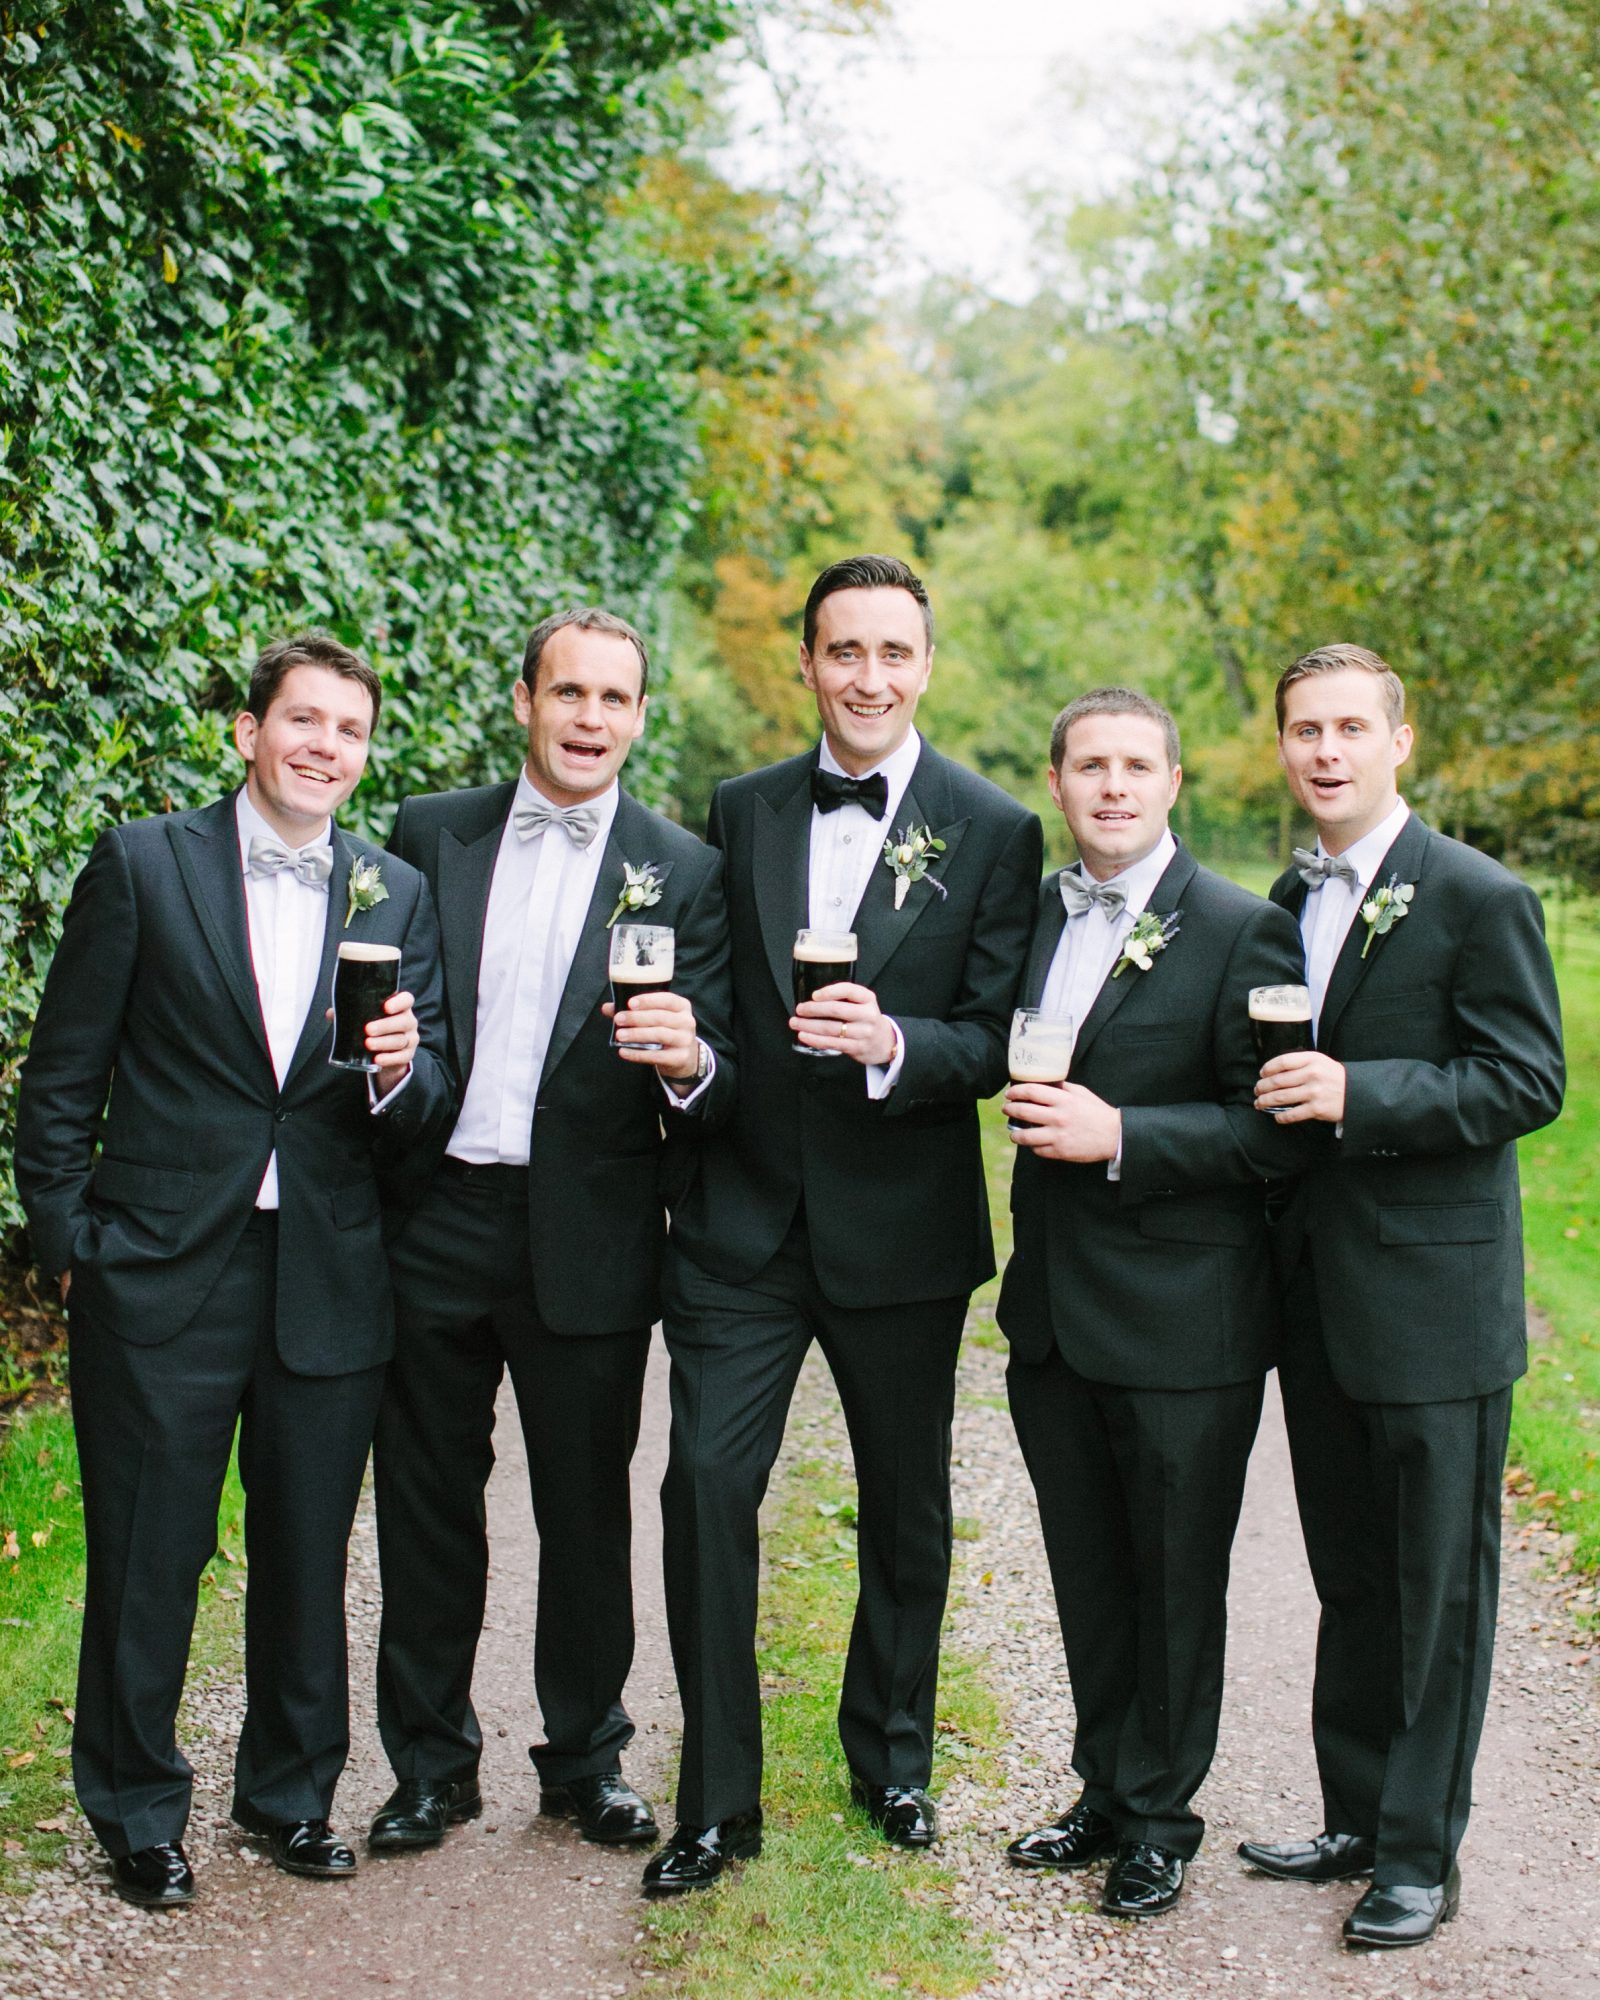 How can I make sure the groomsmen don't get too rowdy?